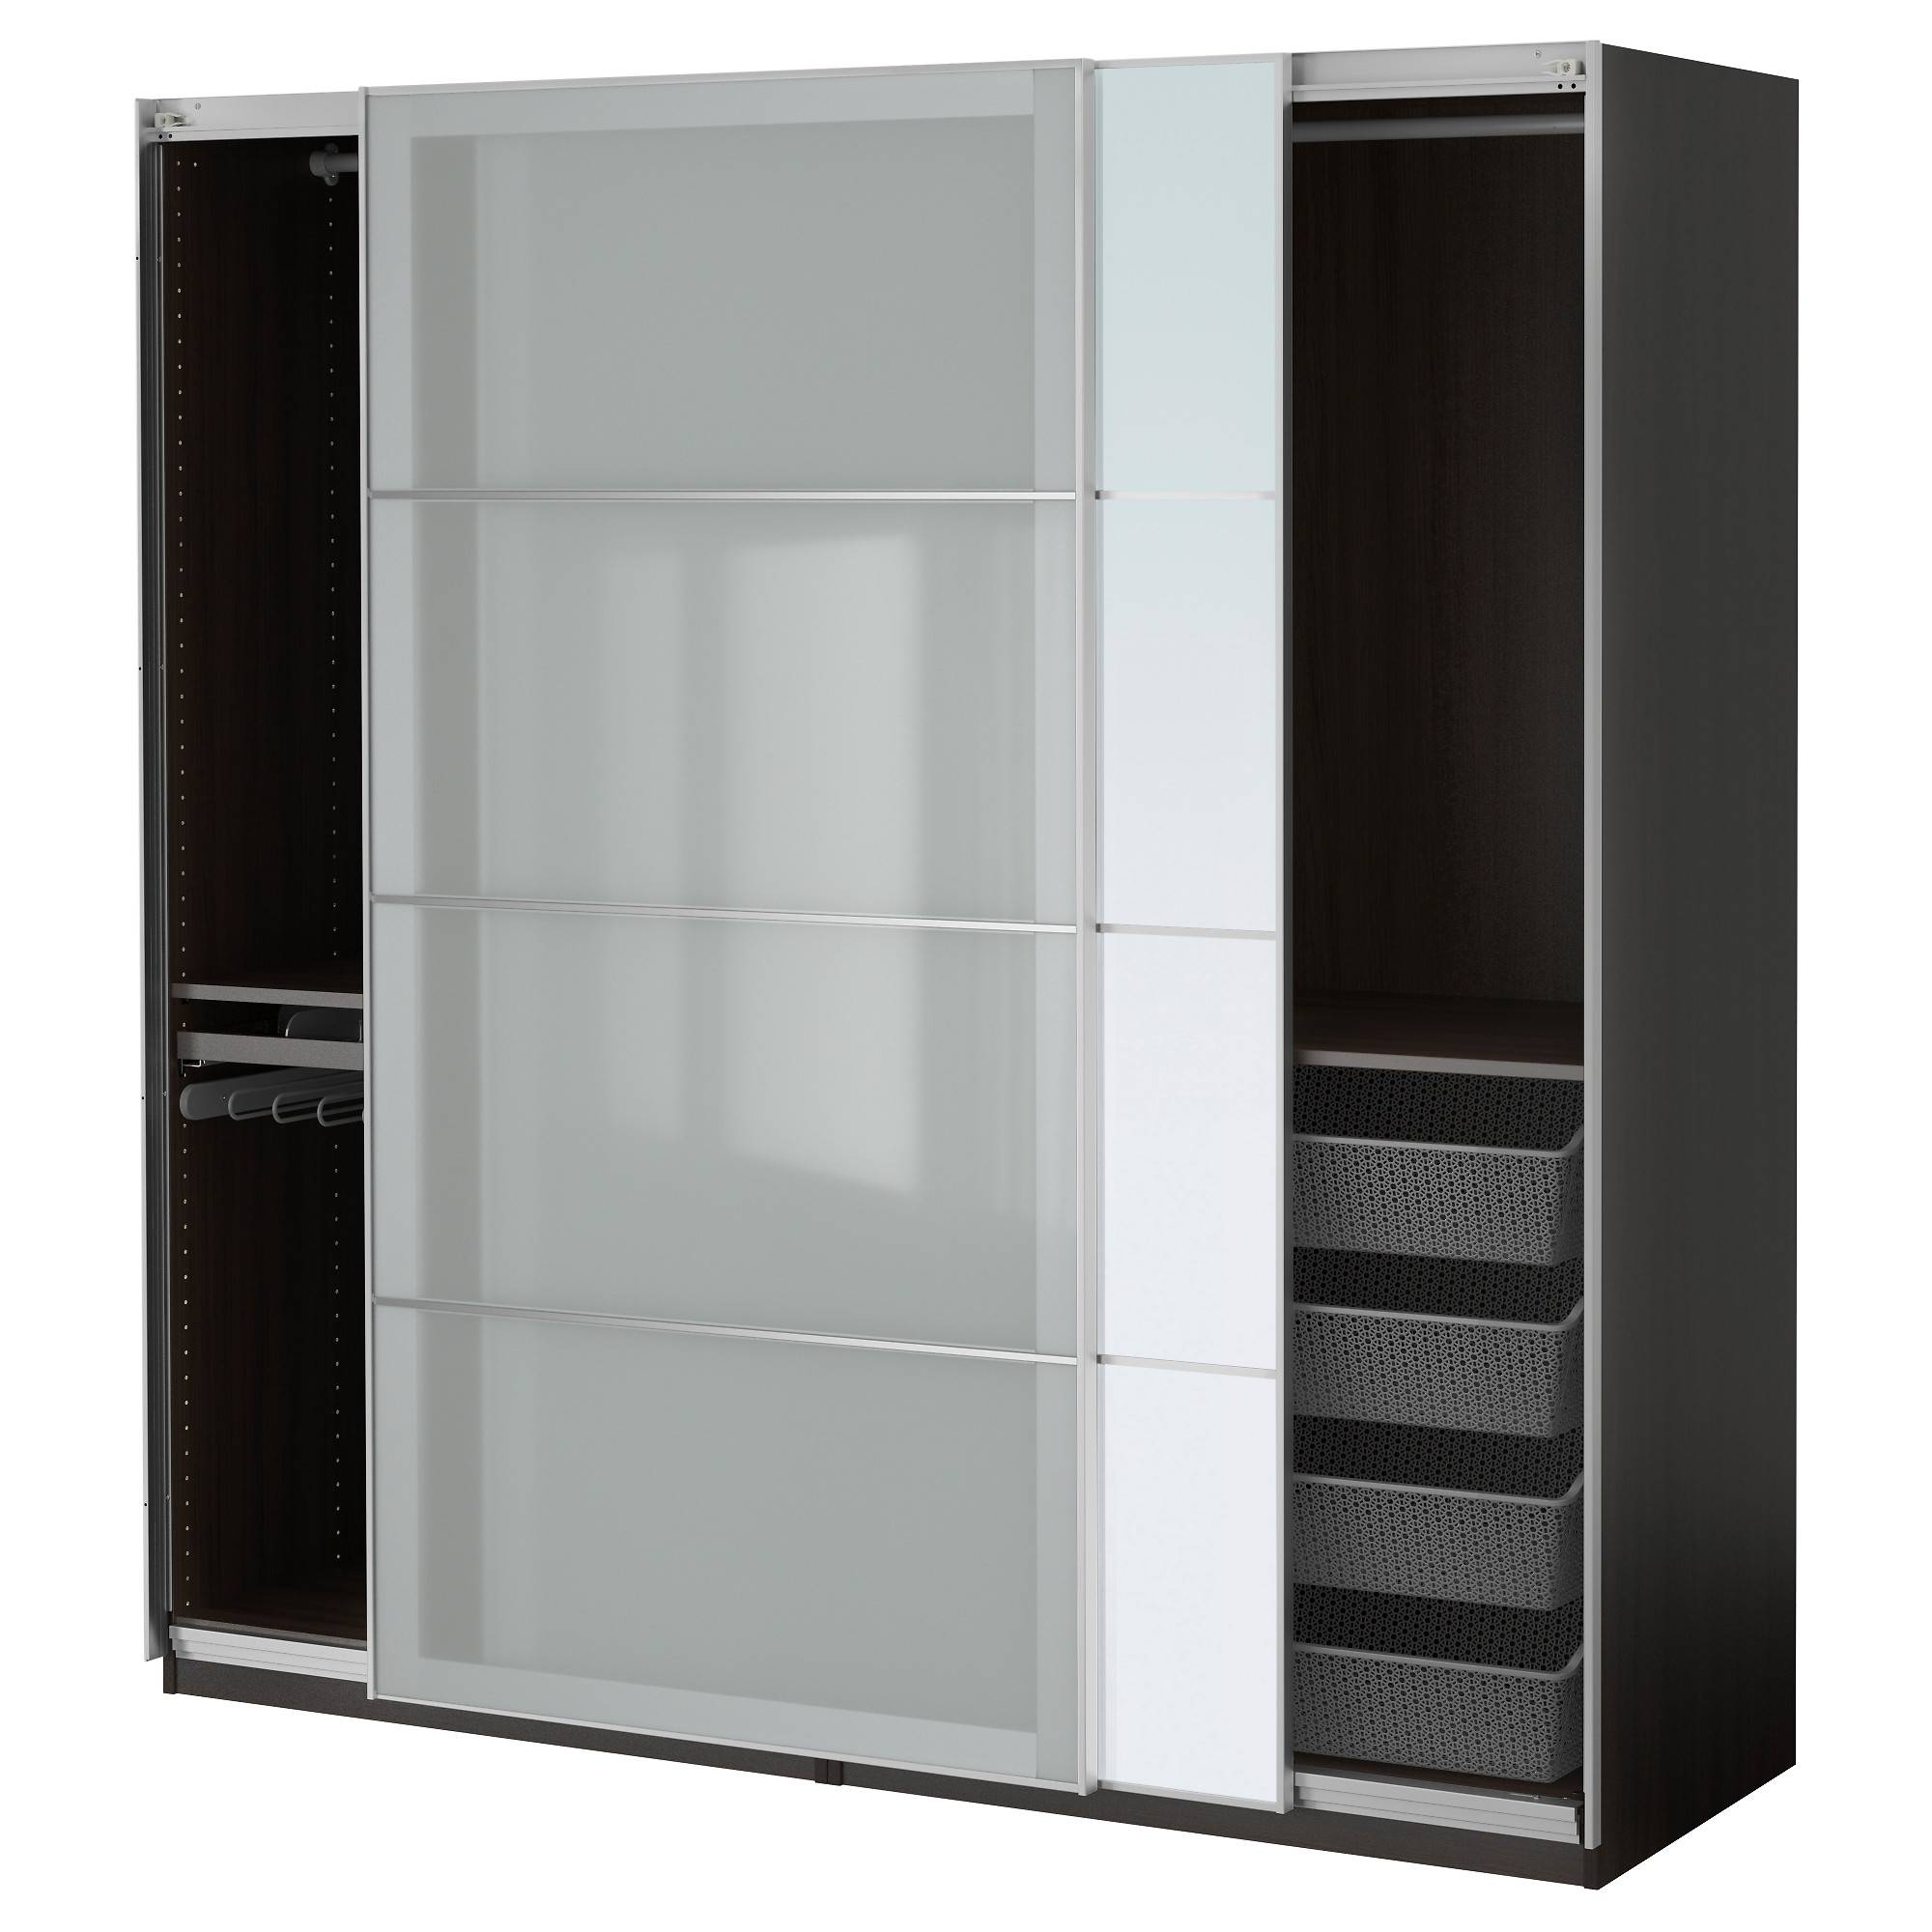 Furniture: Fancy Wardrobe Armoire For Wardrobe Organizer Idea with regard to Wardrobes With Drawers And Shelves (Image 13 of 30)